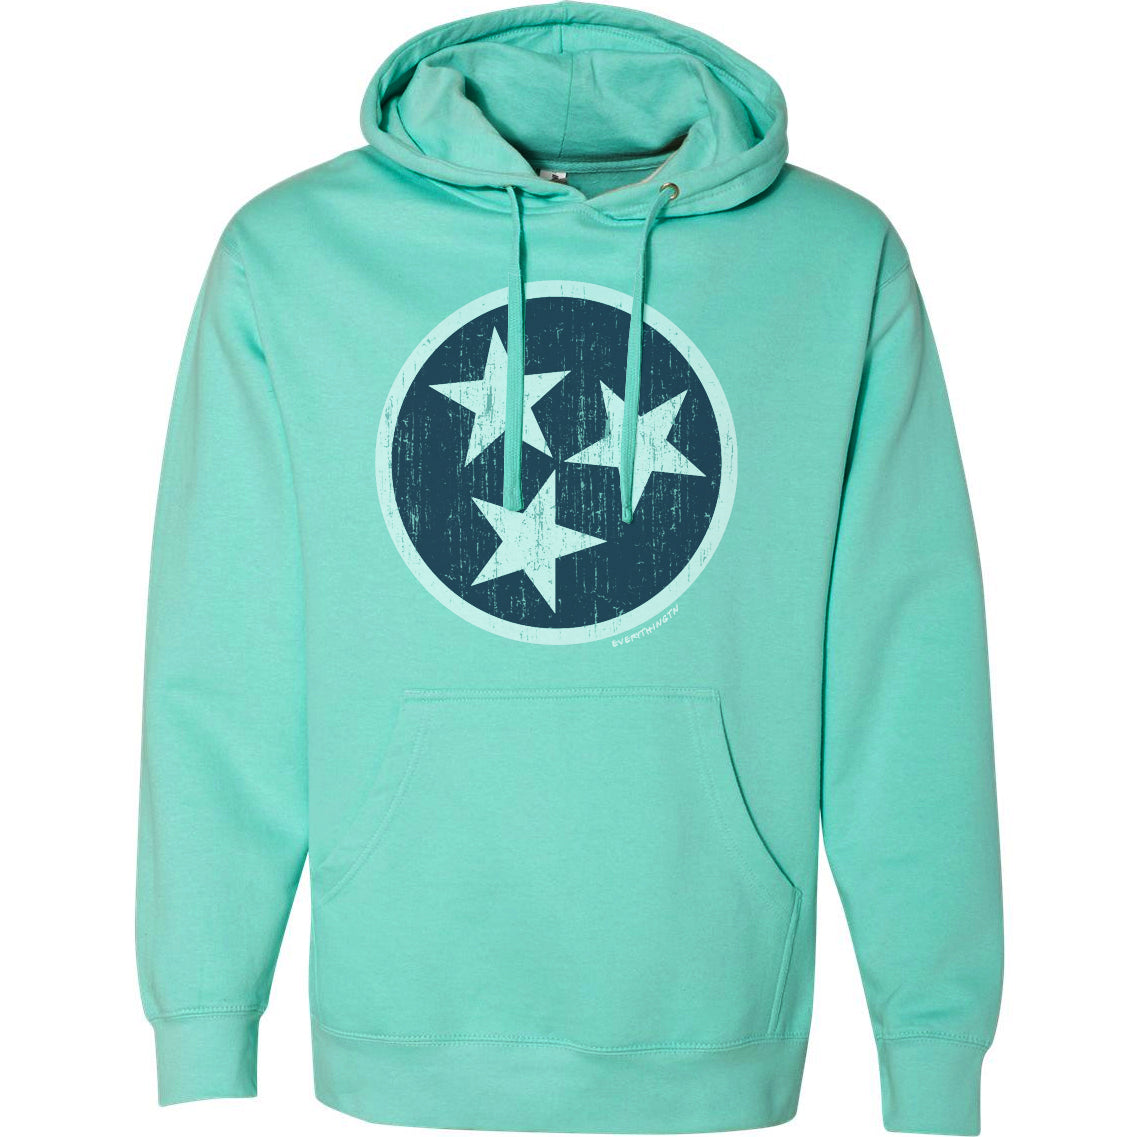 Traditional Tristar Hoodie - Mint